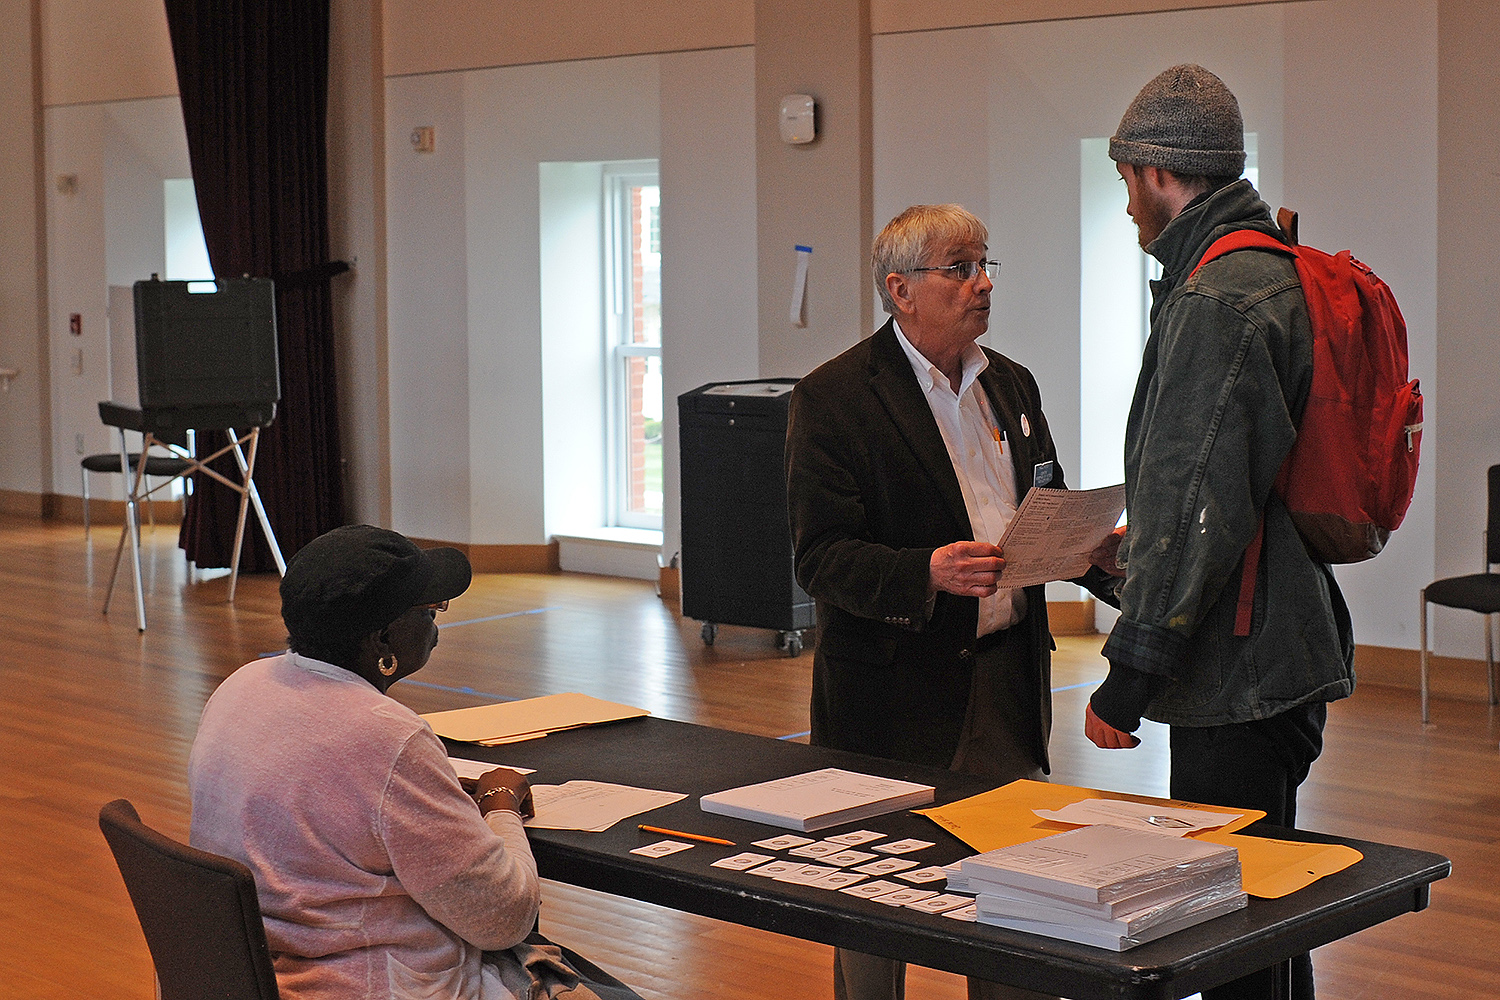 Voting for the Primary Election in Beckham Hall, April 26, 2016.